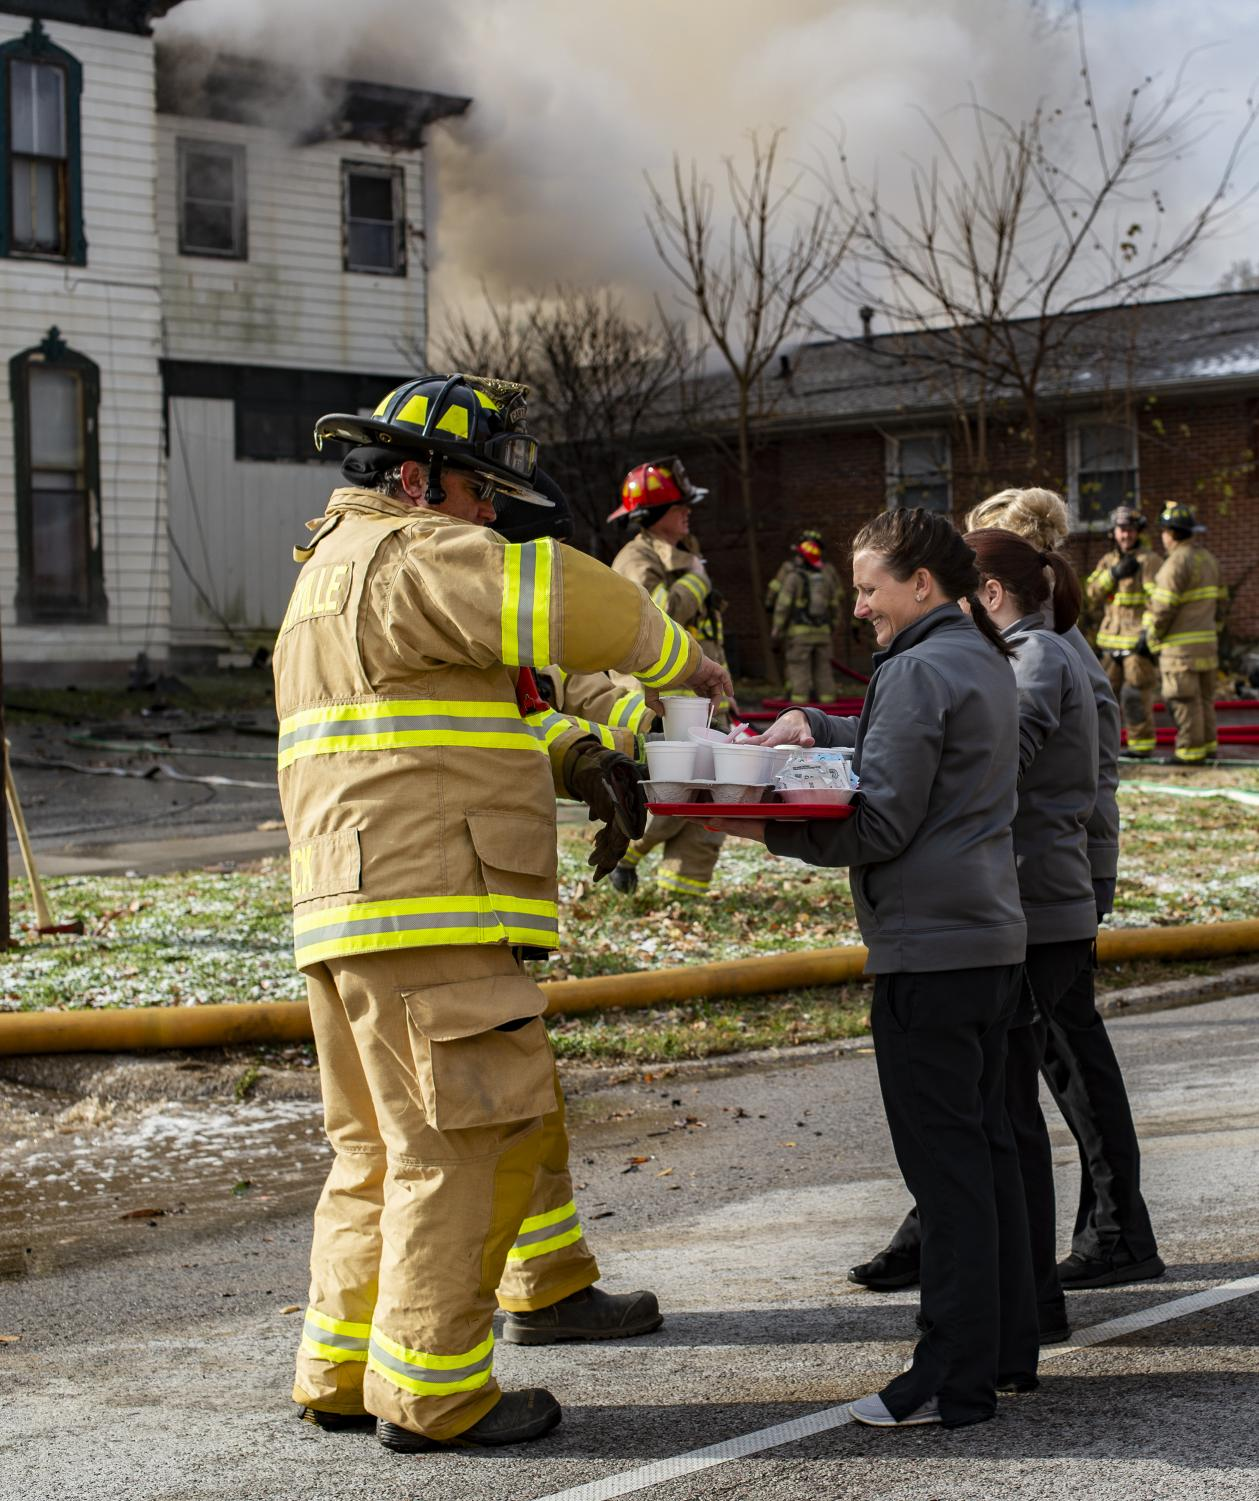 SIH+employees+give+coffee+and+hot+chocolate+to+firefighters+on+the+corner+of+Poplar+and+route+13%2C+Tuesday%2C+Nov.+13%2C+2018.+The+Fire+Department+has+not+yet+released+a+statement.+The+house+was+built+in+1881.+%28Isabel+Miller+%7C+%40IsabelMillerDE%29